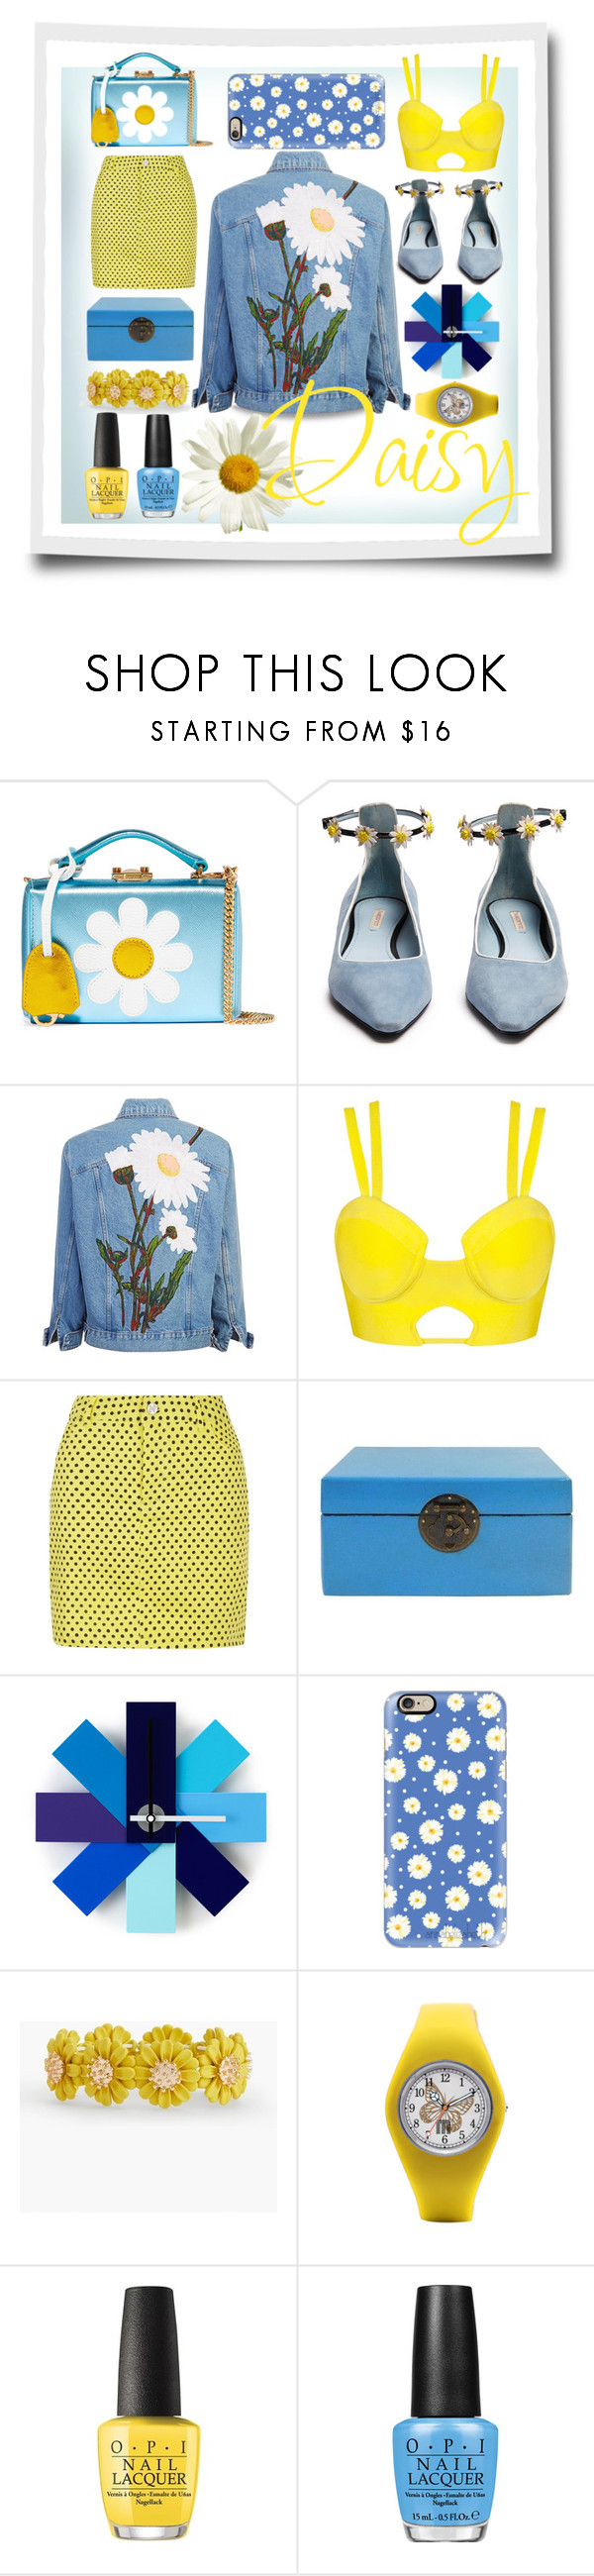 """Daisy Love ❤️"" by city-mom ❤ liked on Polyvore featuring Mark Cross, Fabrizio Viti, Normann Copenhagen, Casetify, Talbots, OPI, Daisy and forfun"